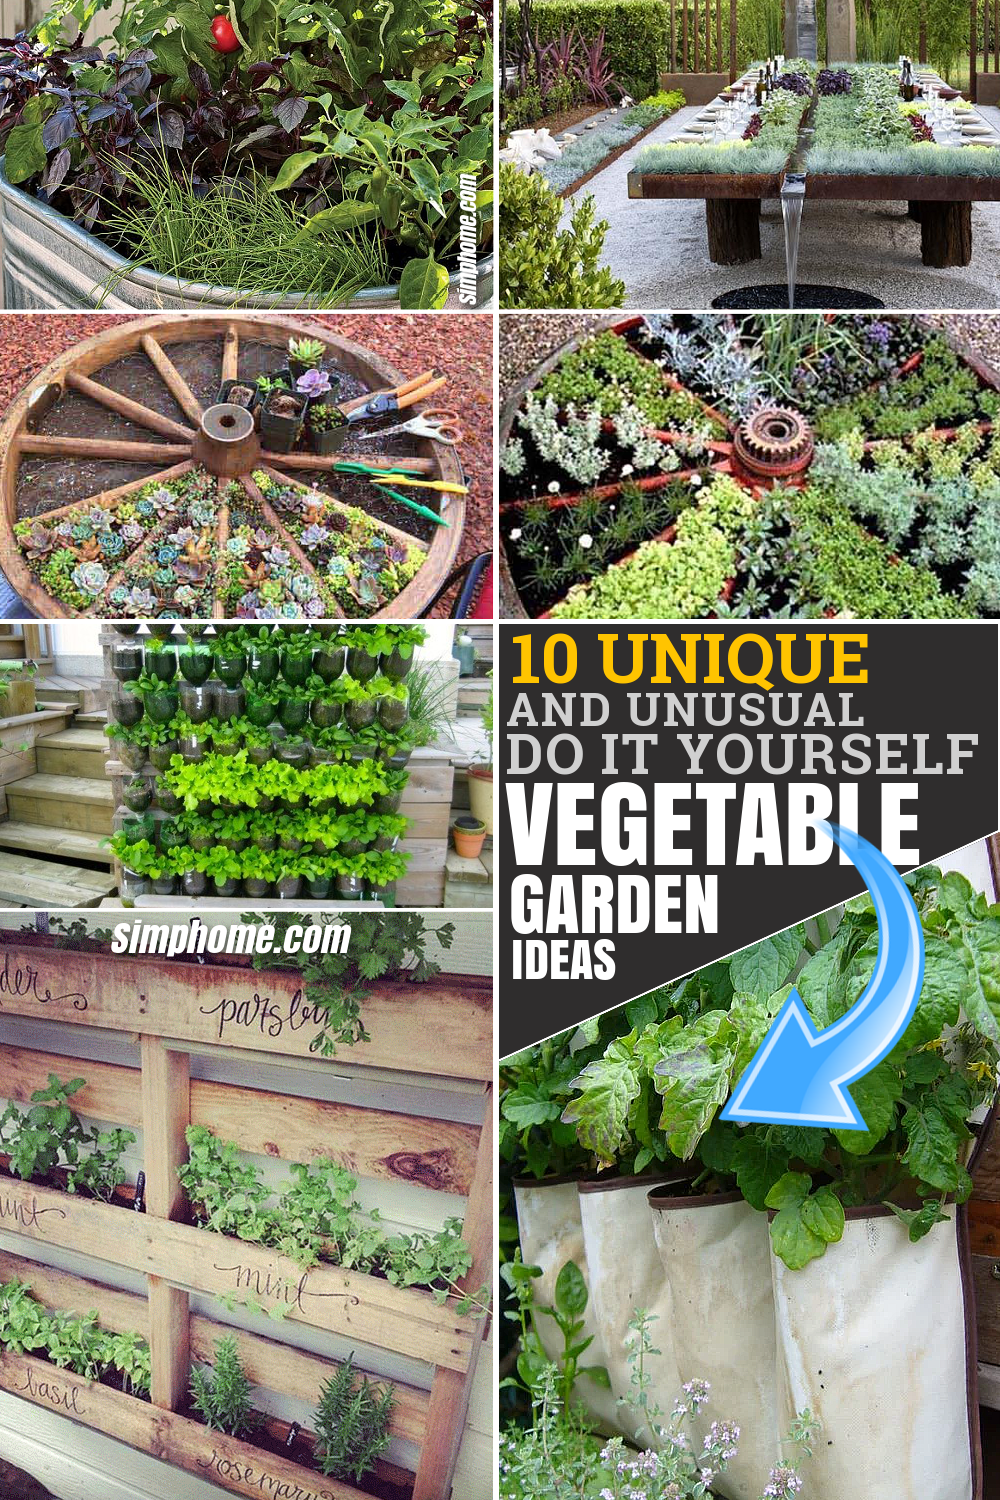 10 Unique and Unusual DIY Vegetable Garden Ideas via Simphome.com Pinterest Featured image